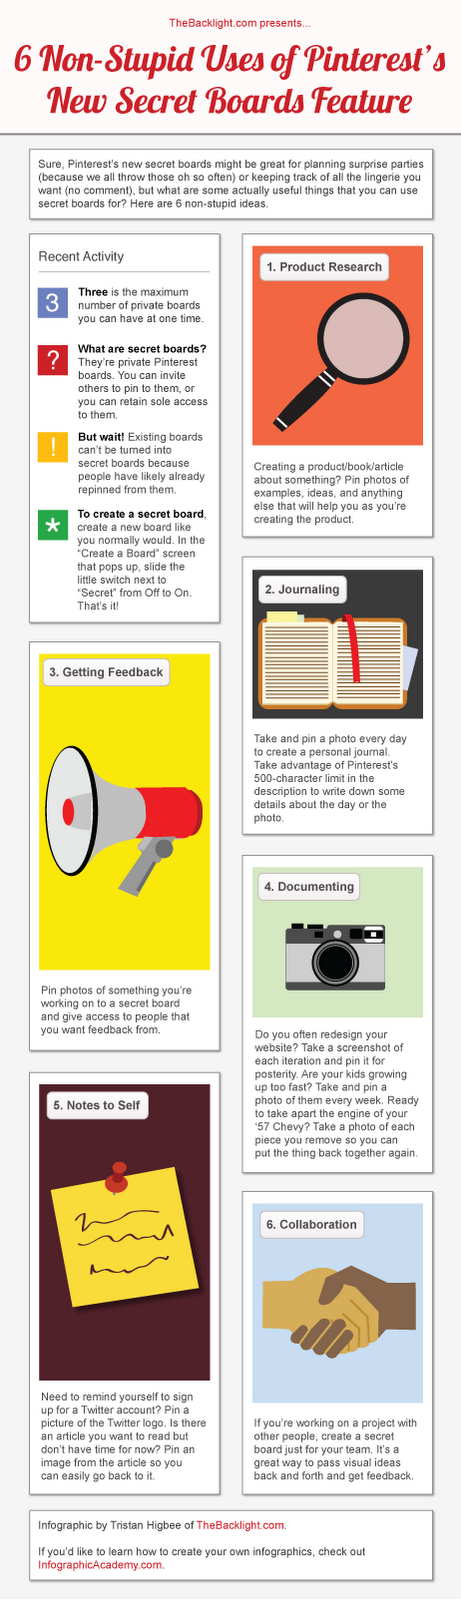 pinterest secret board infographic